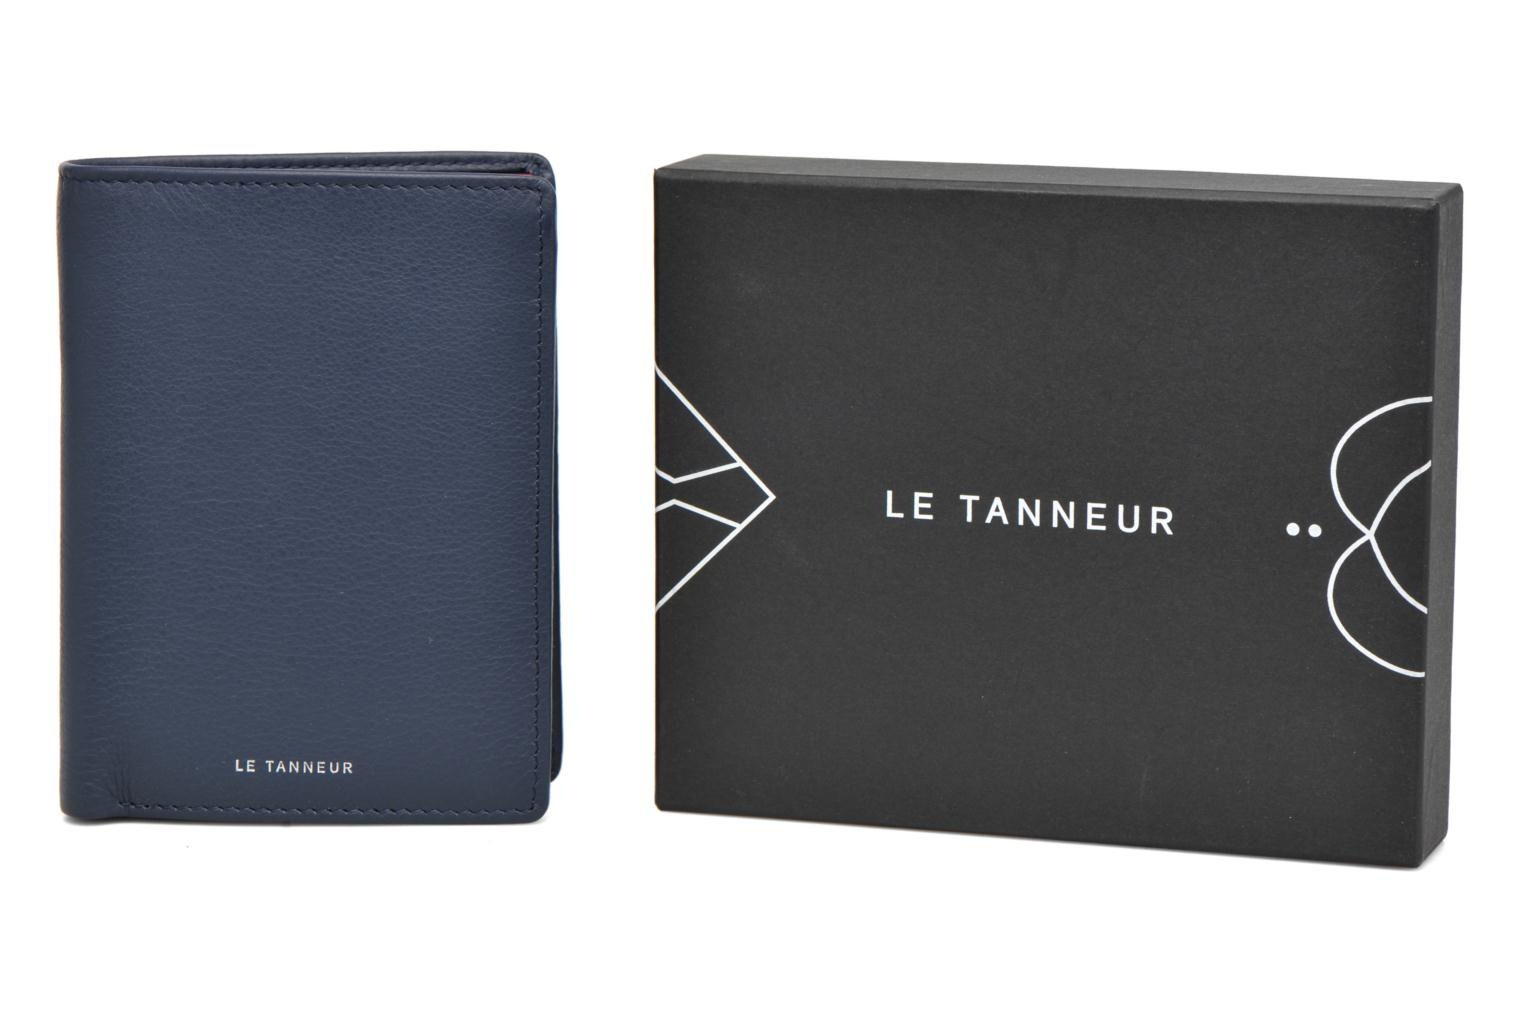 Wallets & cases Le Tanneur Portefeuille billets Mrs cc monnaie zippé 4 volets Blue back view